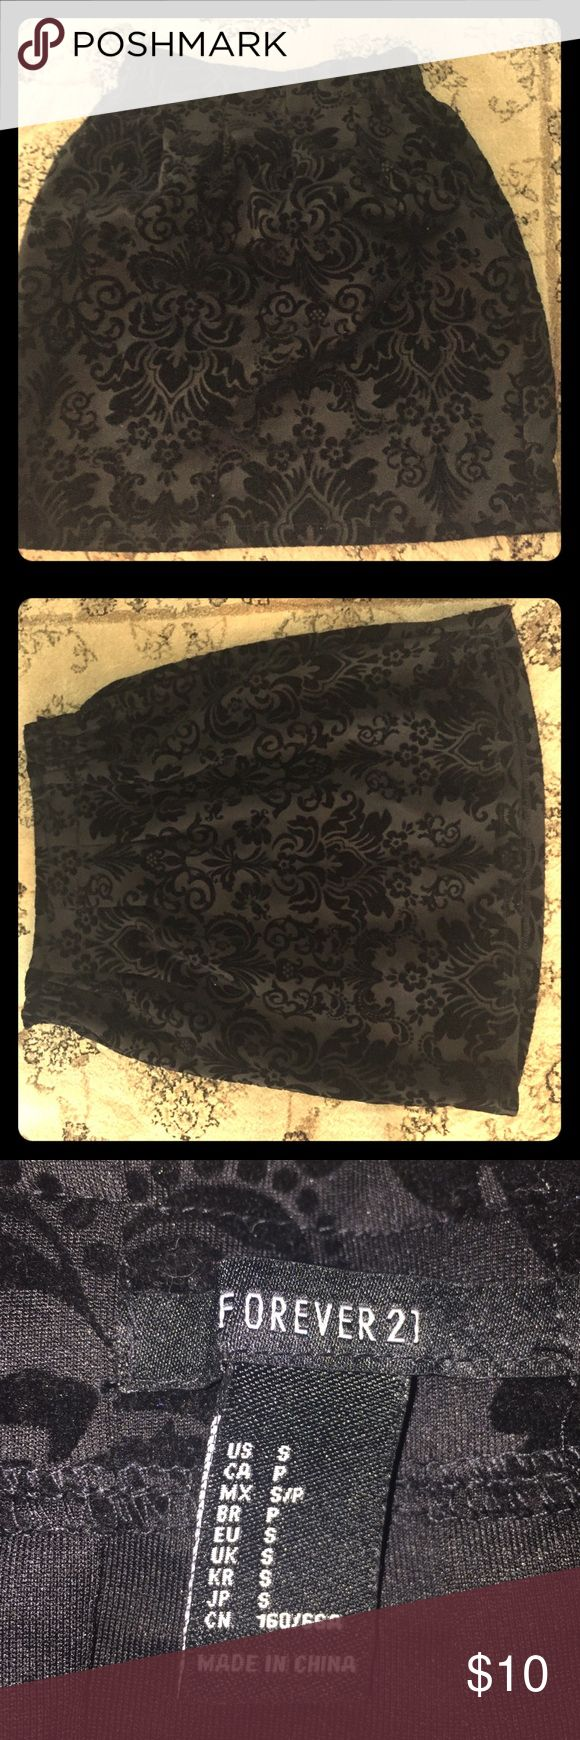 Damask Print Skirt Forever 21 size S. Velvet damask print elastic waist skirt. Perfect for tucking blouses into and worn with tights and heels! Smoke free pet free home! Forever 21 Skirts A-Line or Full